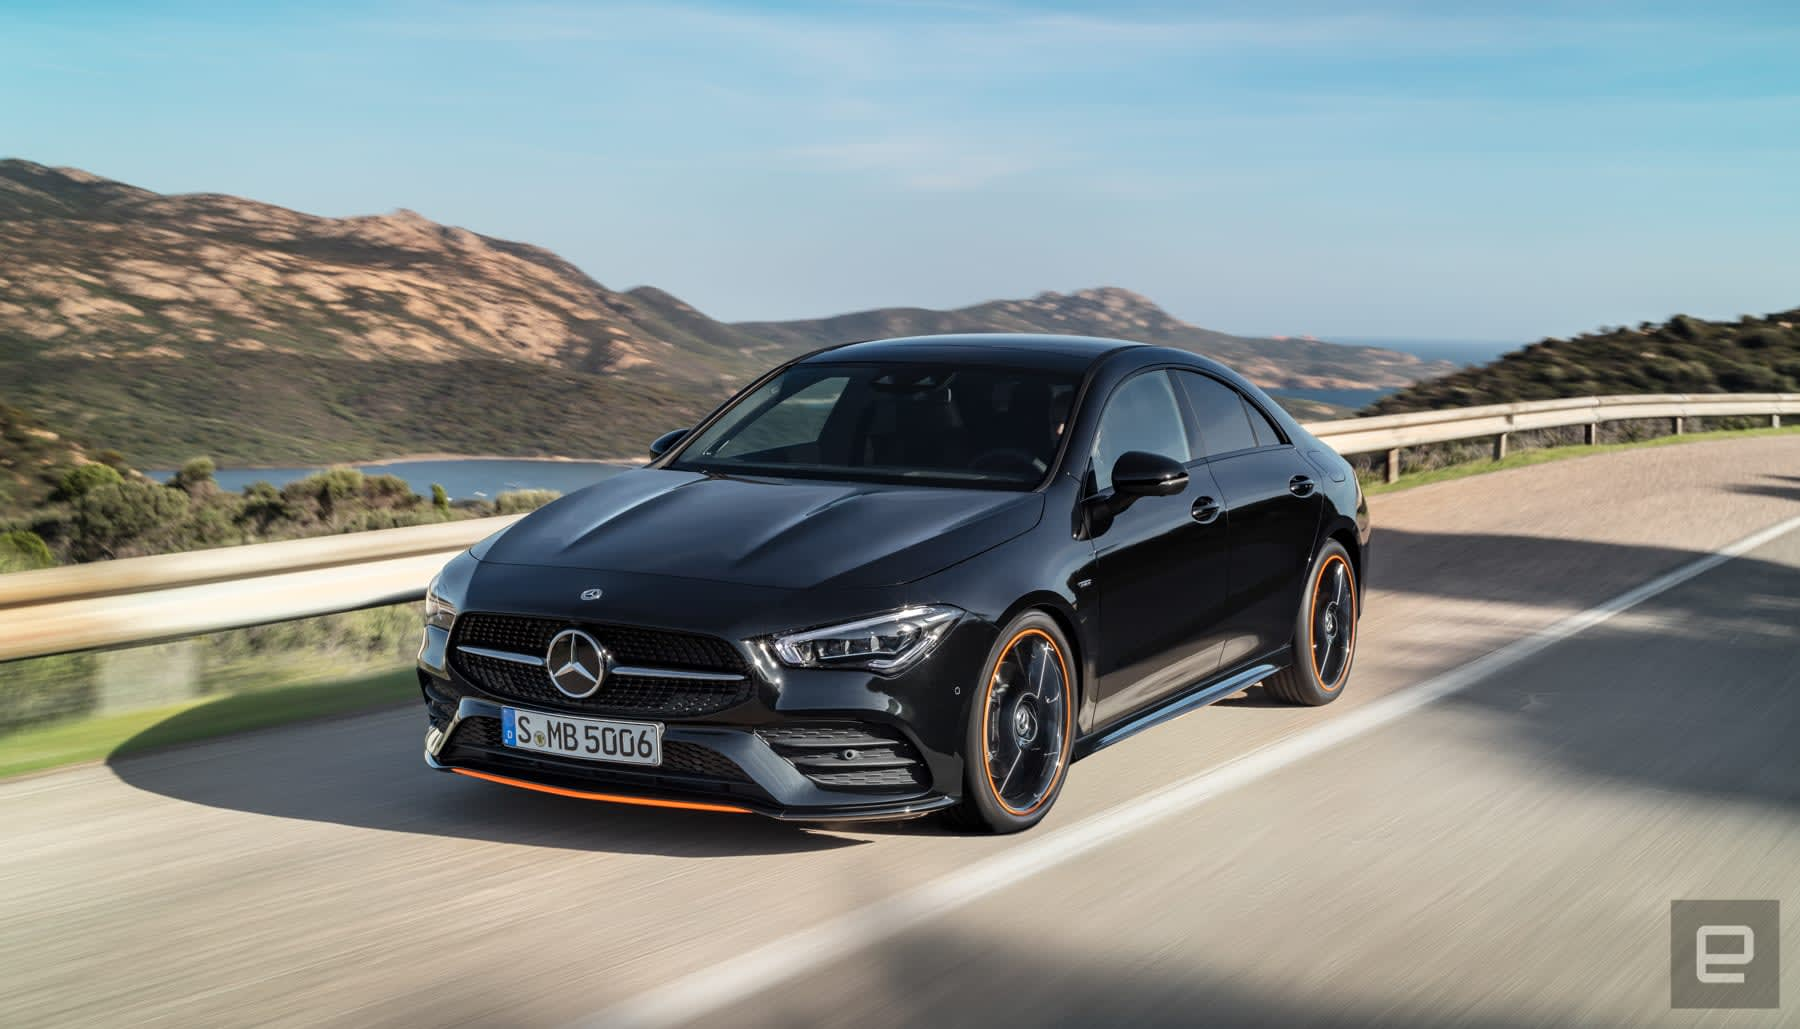 Mercedes Benz S New Cla Coupe Responds To Your Gestures